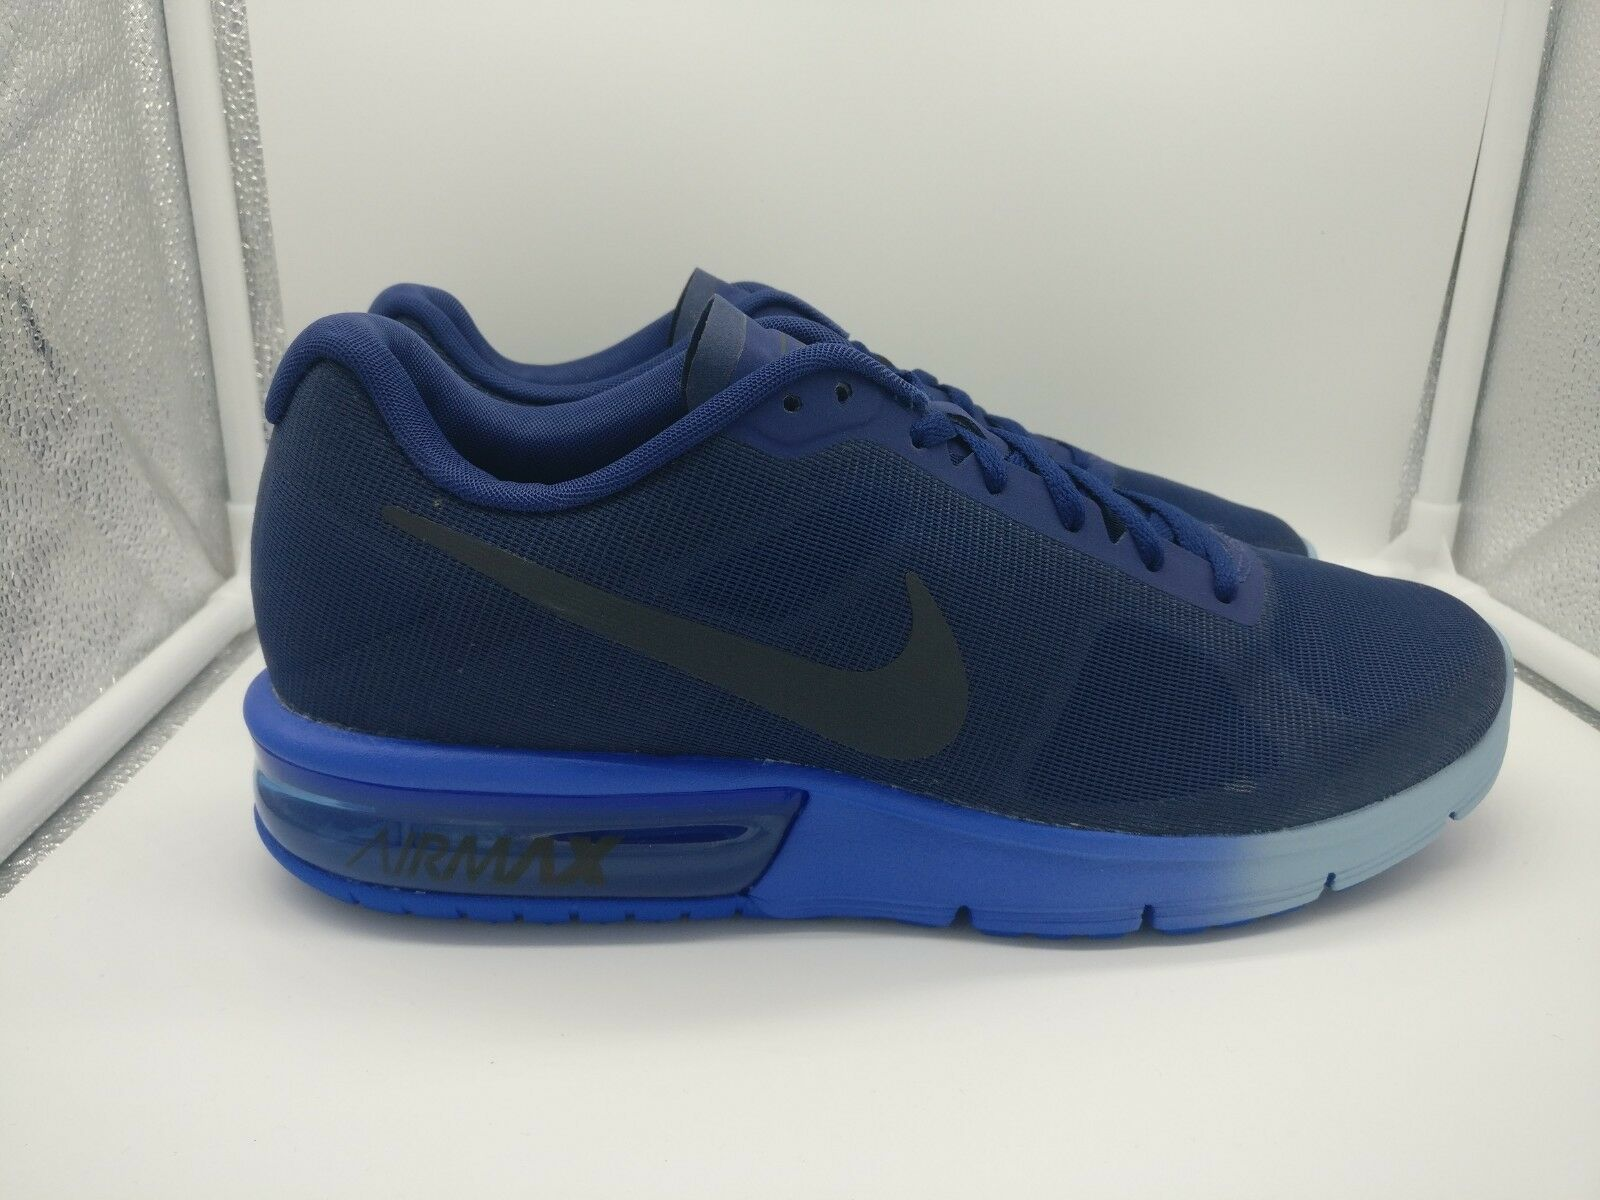 Nike Air Max Sequent Loyal blueee Dark Obsidian 719912-407